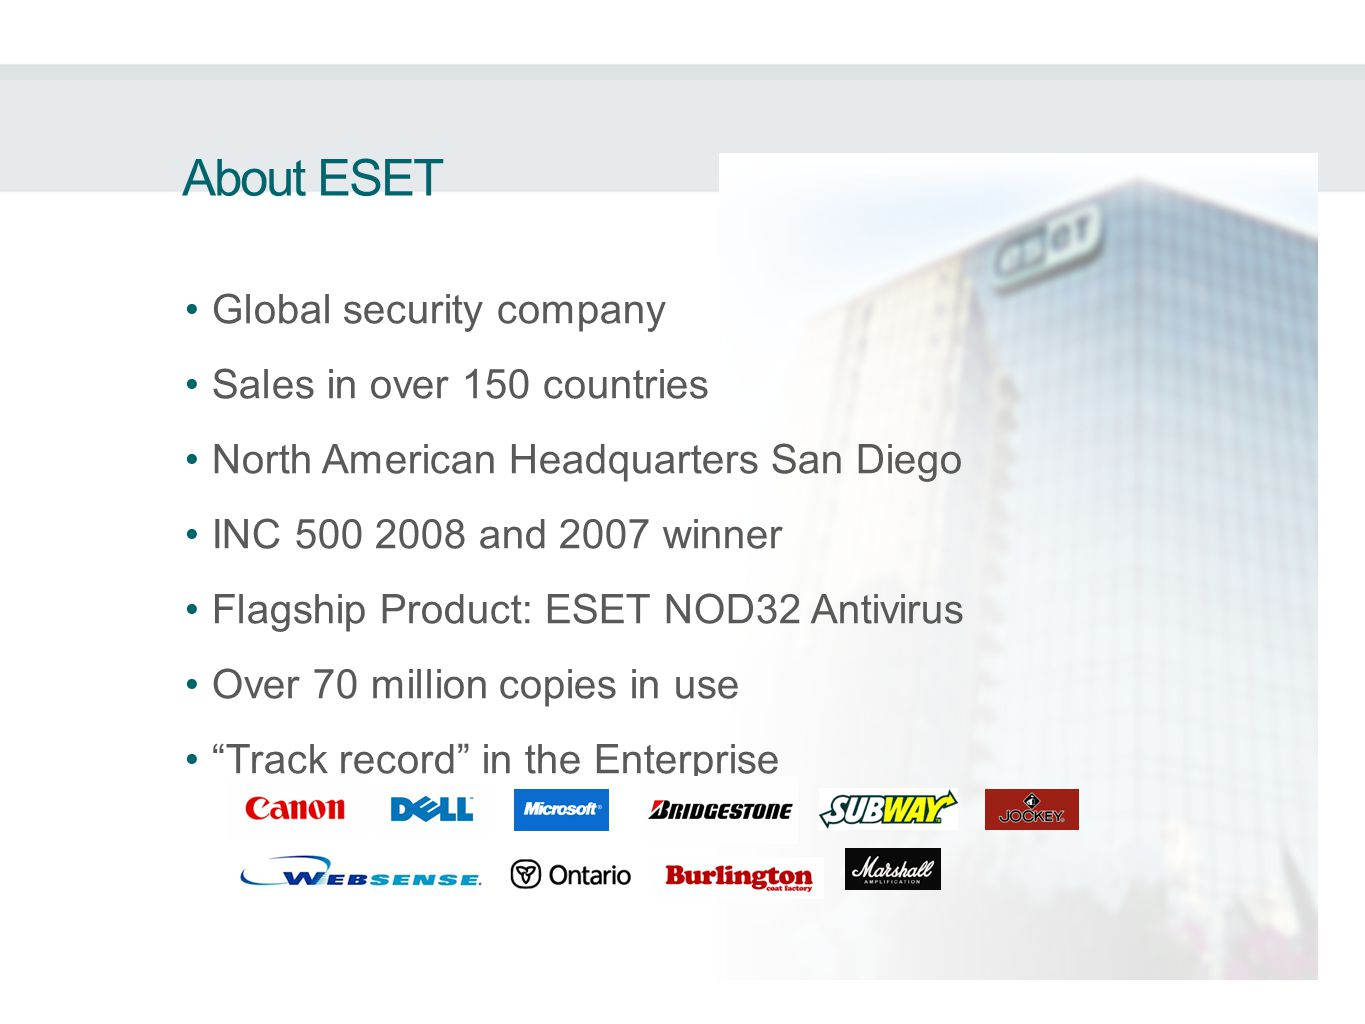 Global security company Sales in over 150 countries North American Headquarters San Diego INC 500 2008 and 2007 winner Flagship Product: ESET NOD32 Antivirus Over 70 million copies in use Track record in the Enterprise About ESET